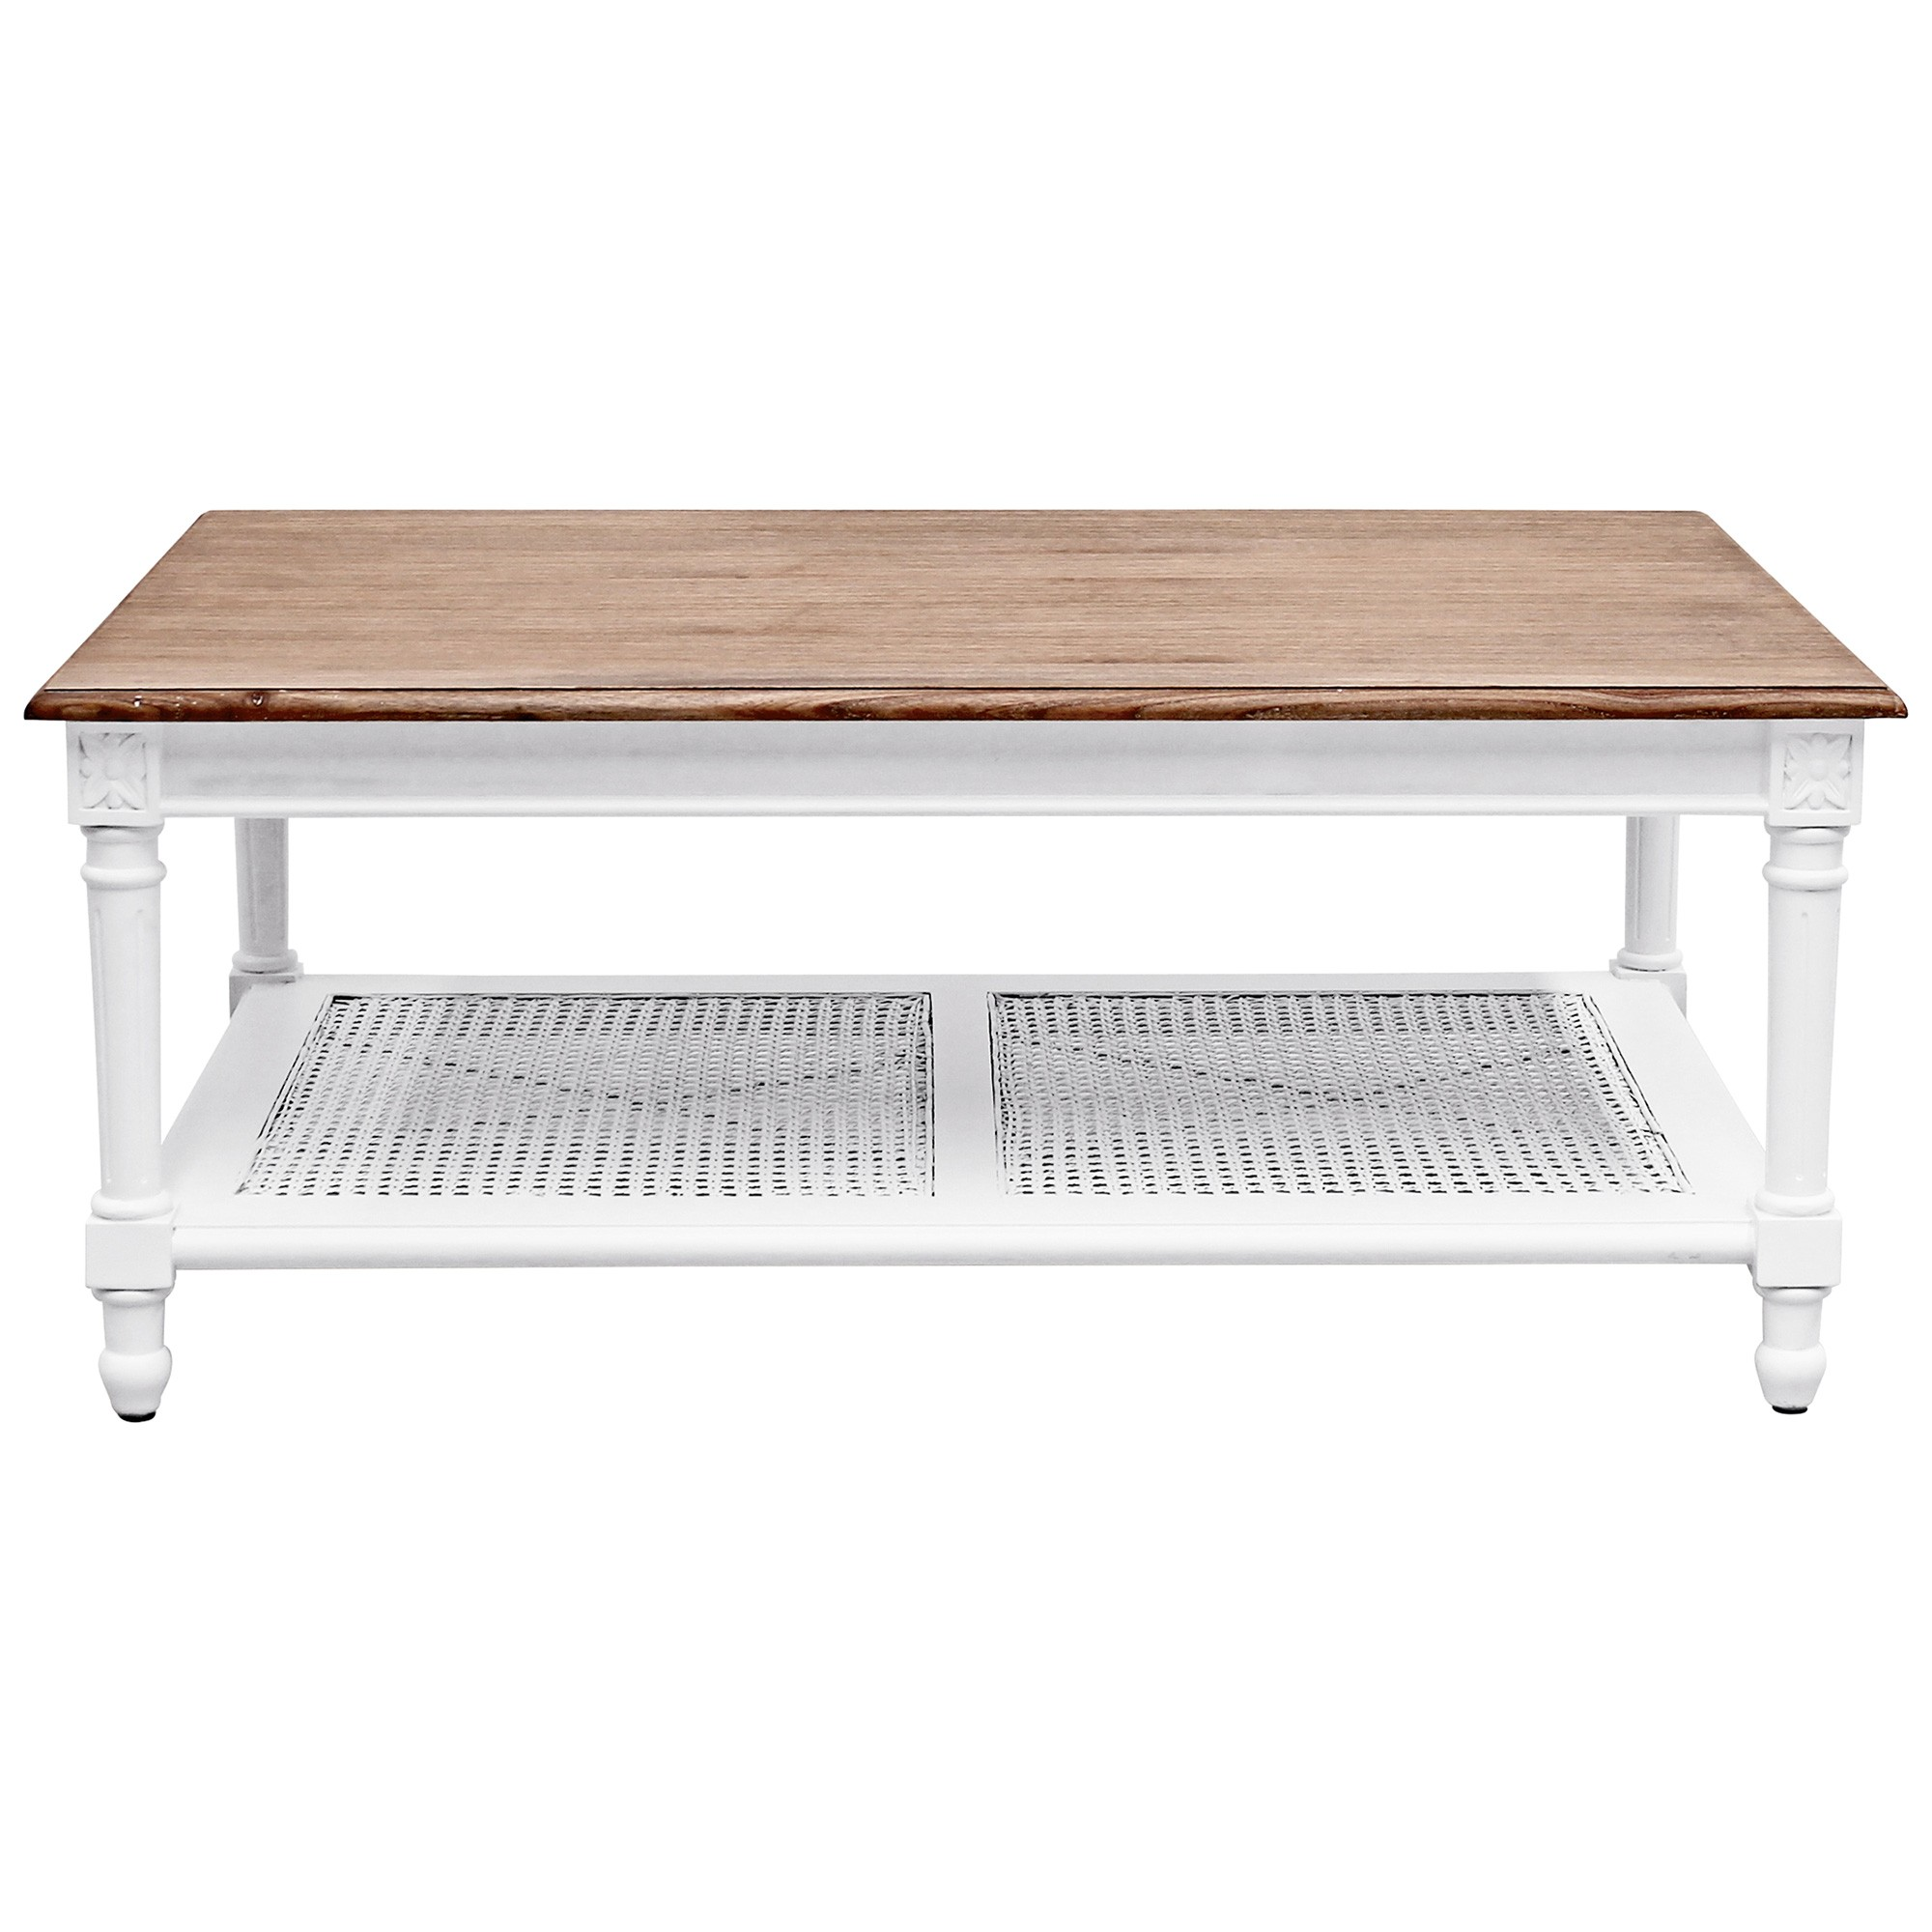 Lapalisse Handcrafted Mindi Wood Coffee Table, 110cm, White / Weathered Oak